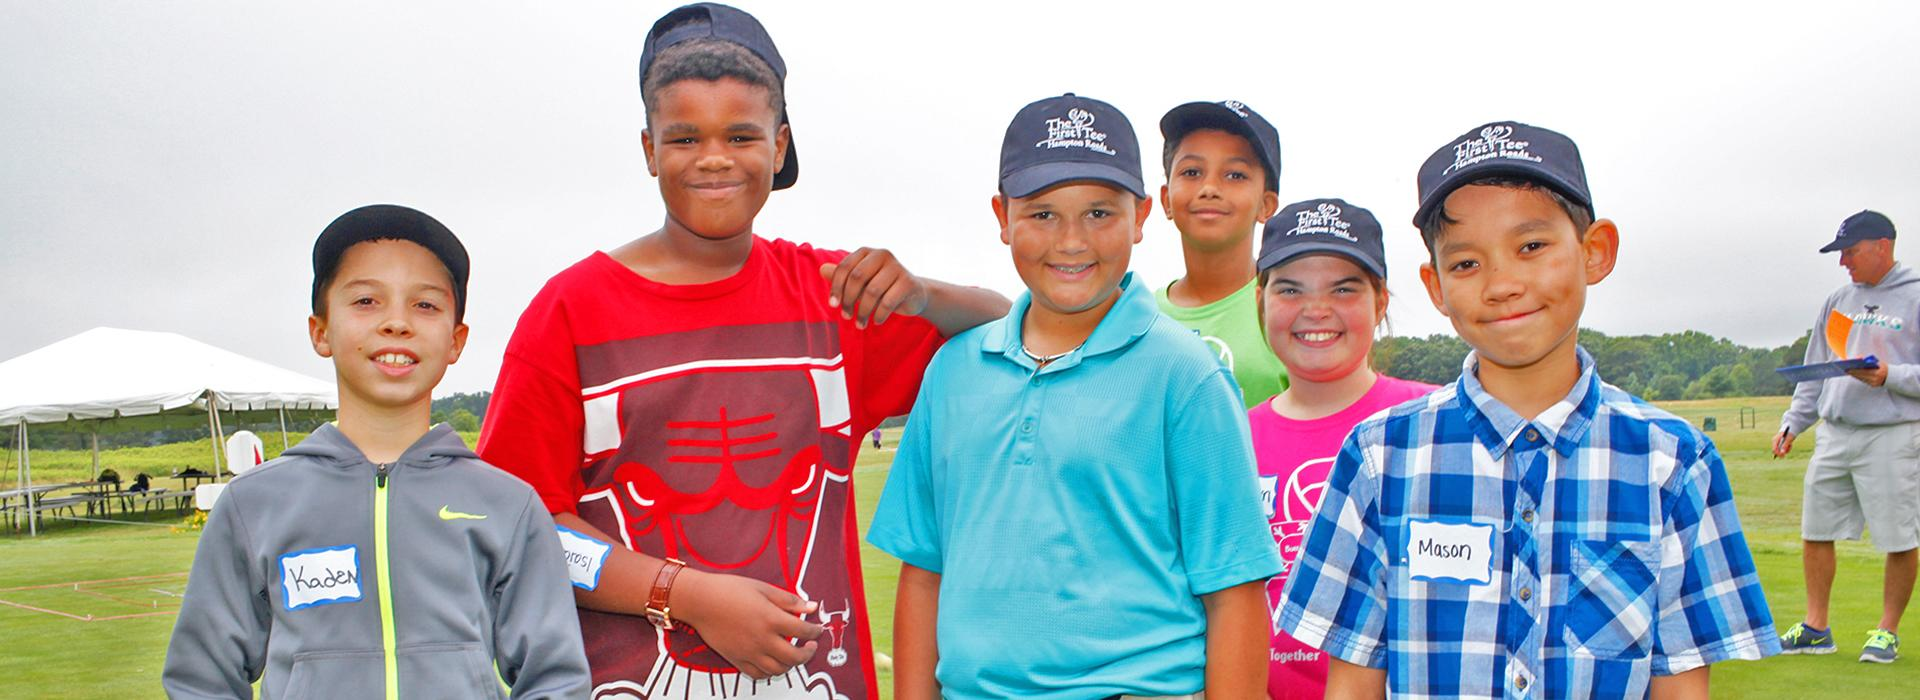 The First Tee of Hampton Roads children smiling